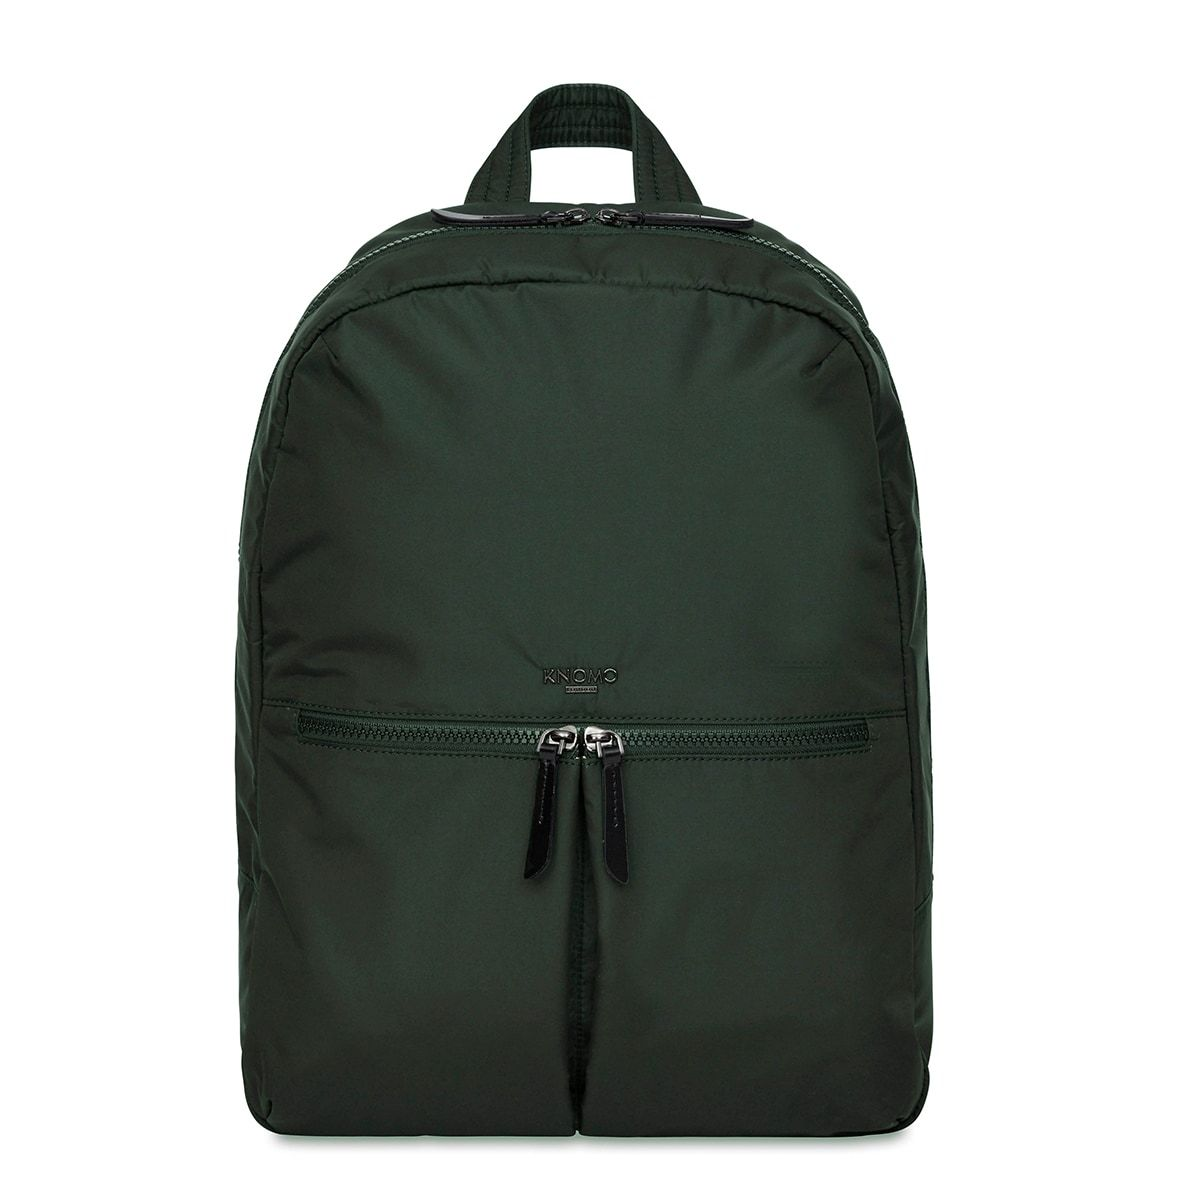 "KNOMO Berlin Laptop Backpack From Front 15"" -  Bottle Green 